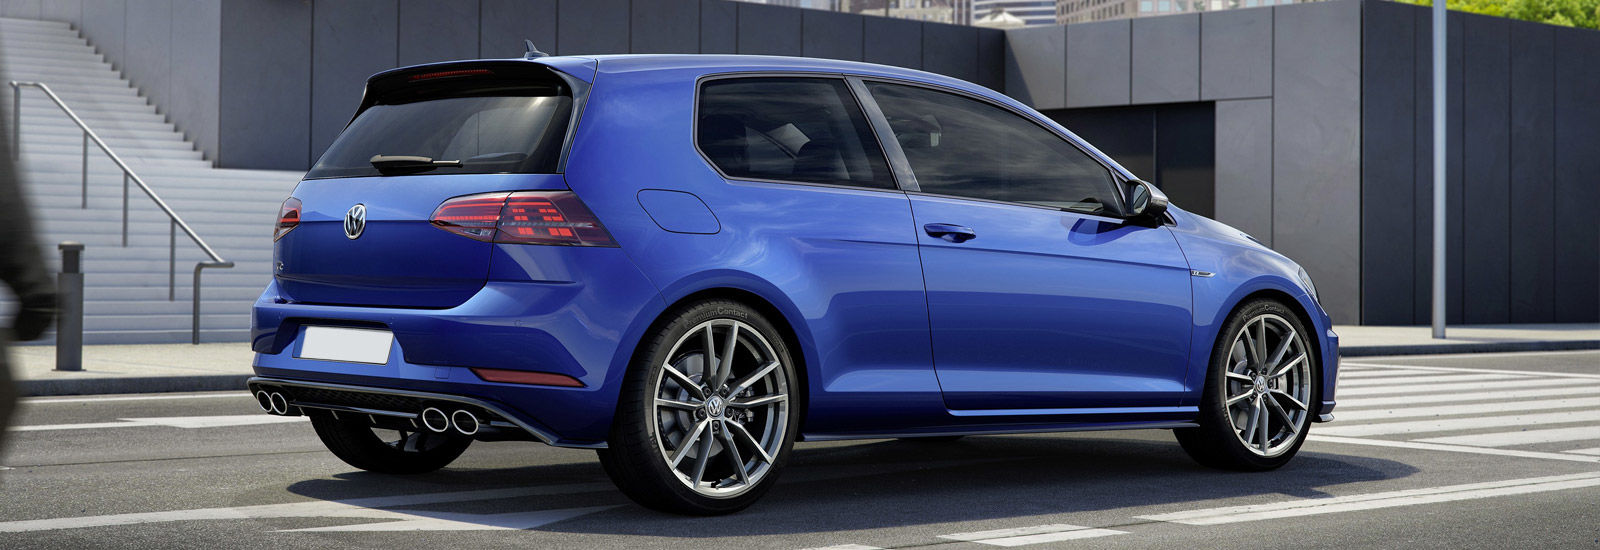 2017 vw golf r and r estate price specs and release date carwow. Black Bedroom Furniture Sets. Home Design Ideas